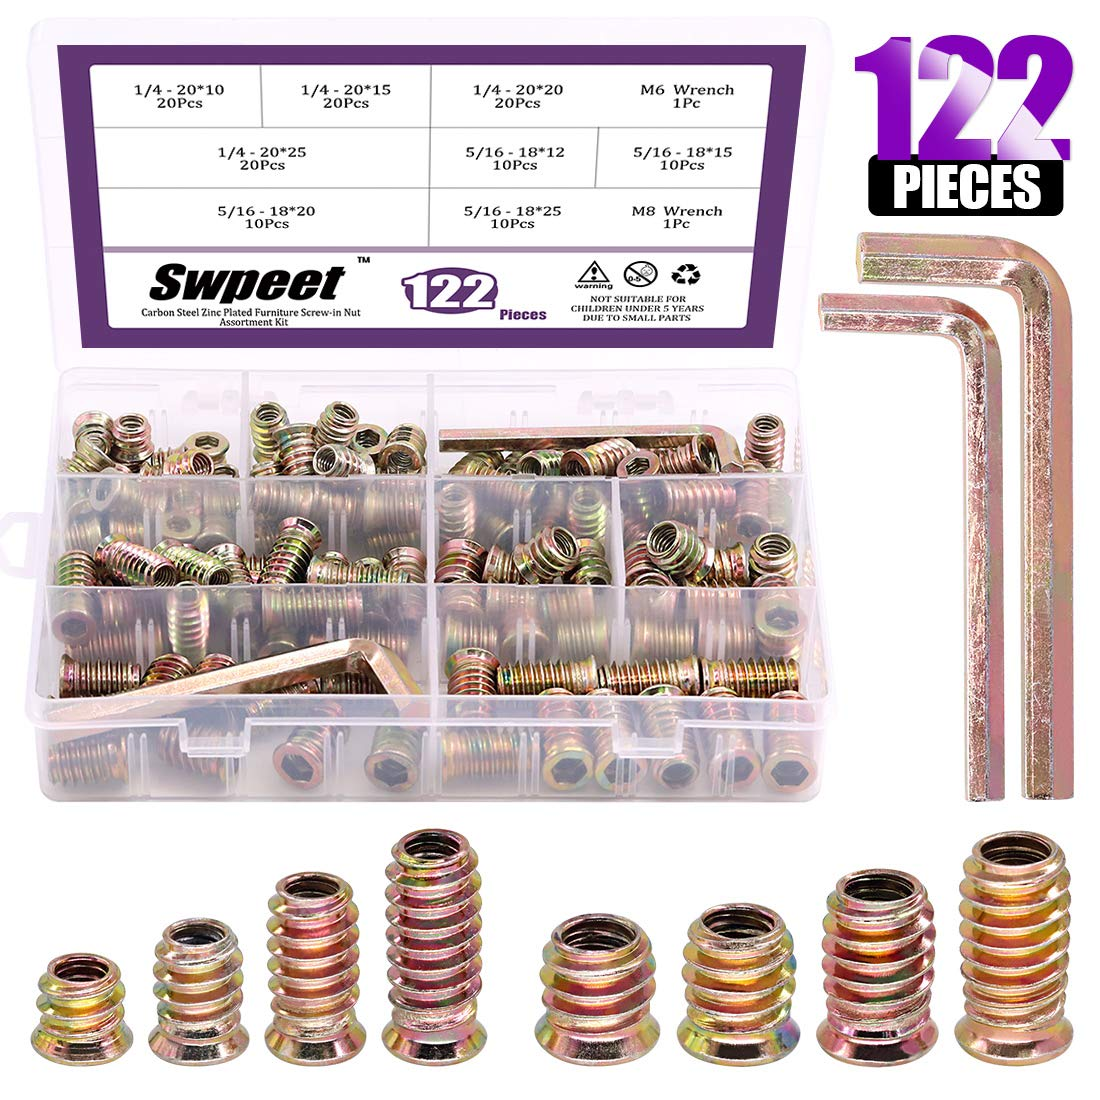 Swpeet 122Pcs Carbon Steel Color Zinc Plated Carbon Furniture Screw in Nut Threaded Wood Inserts Bolt Fastener Connector Hex Socket (1/4 + 5/16, Assortment Kit)